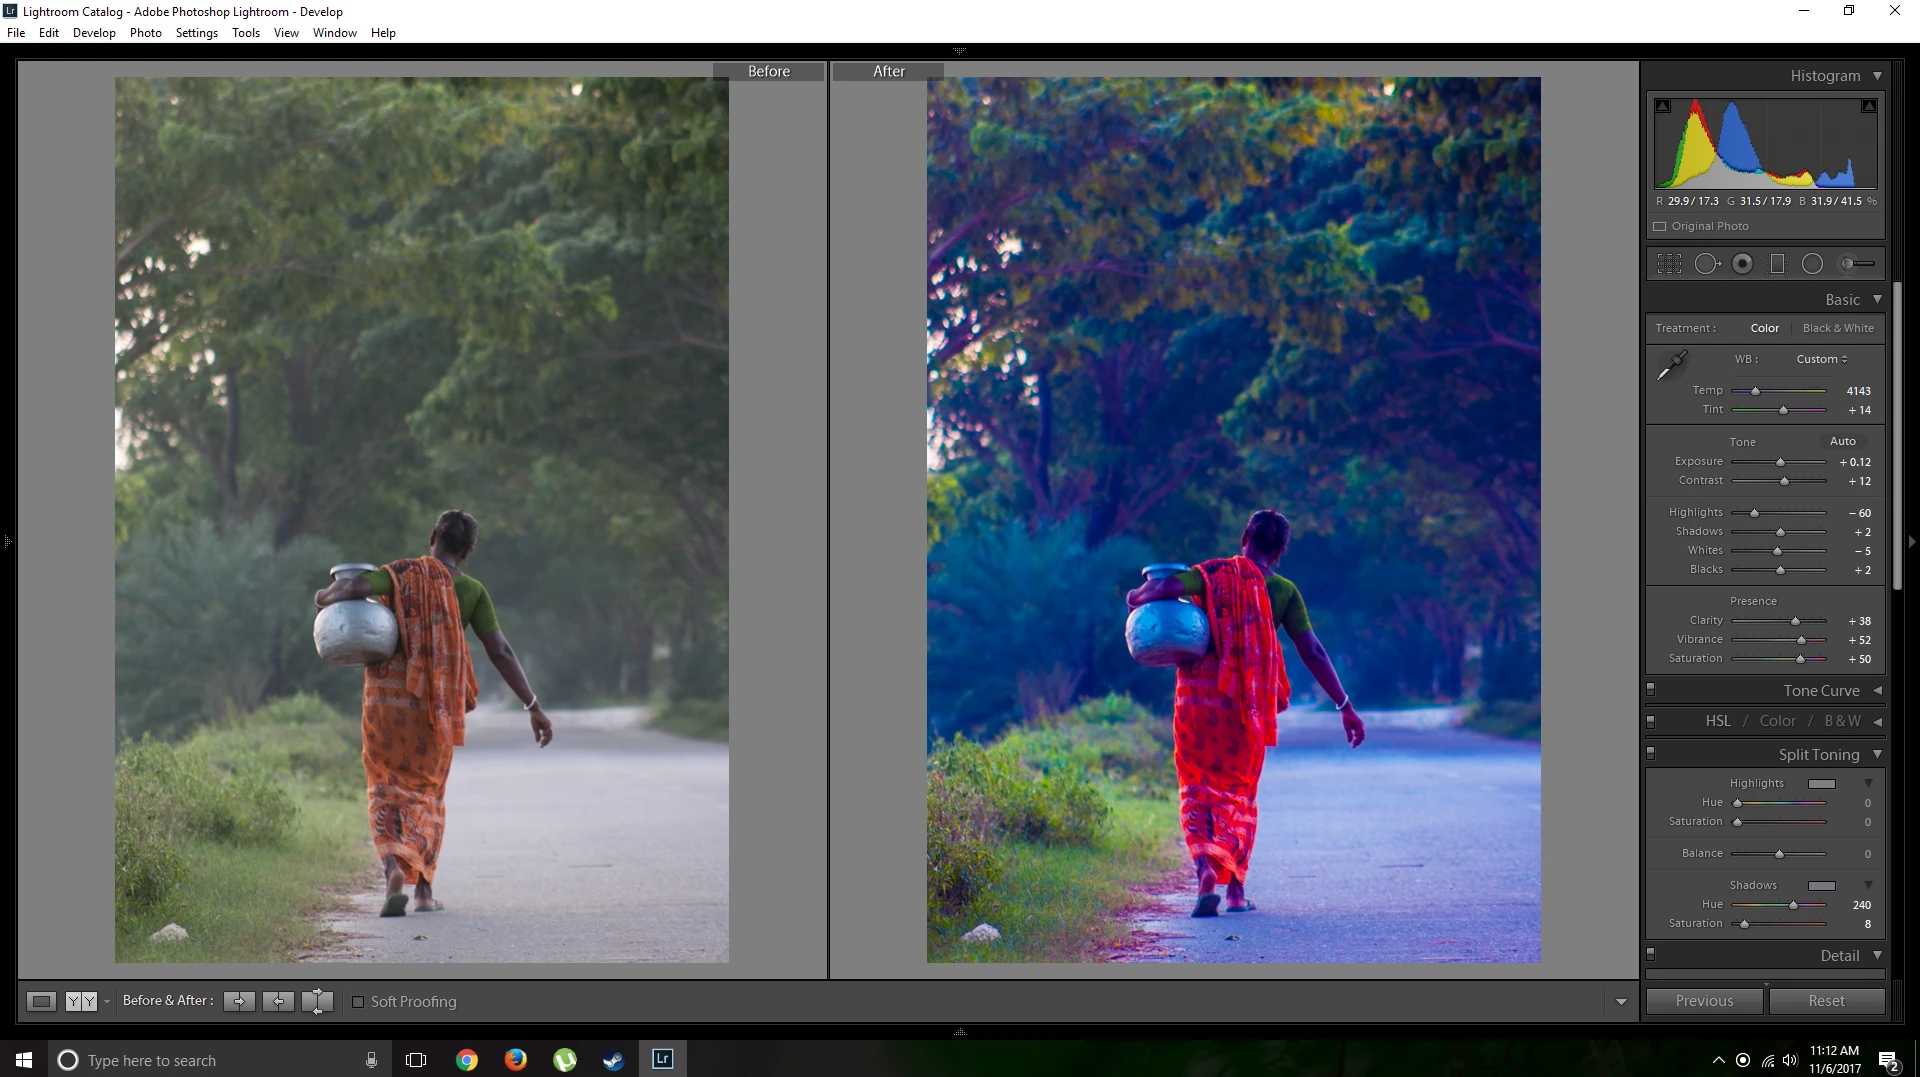 Color correction and edited by Adobe LightRoom